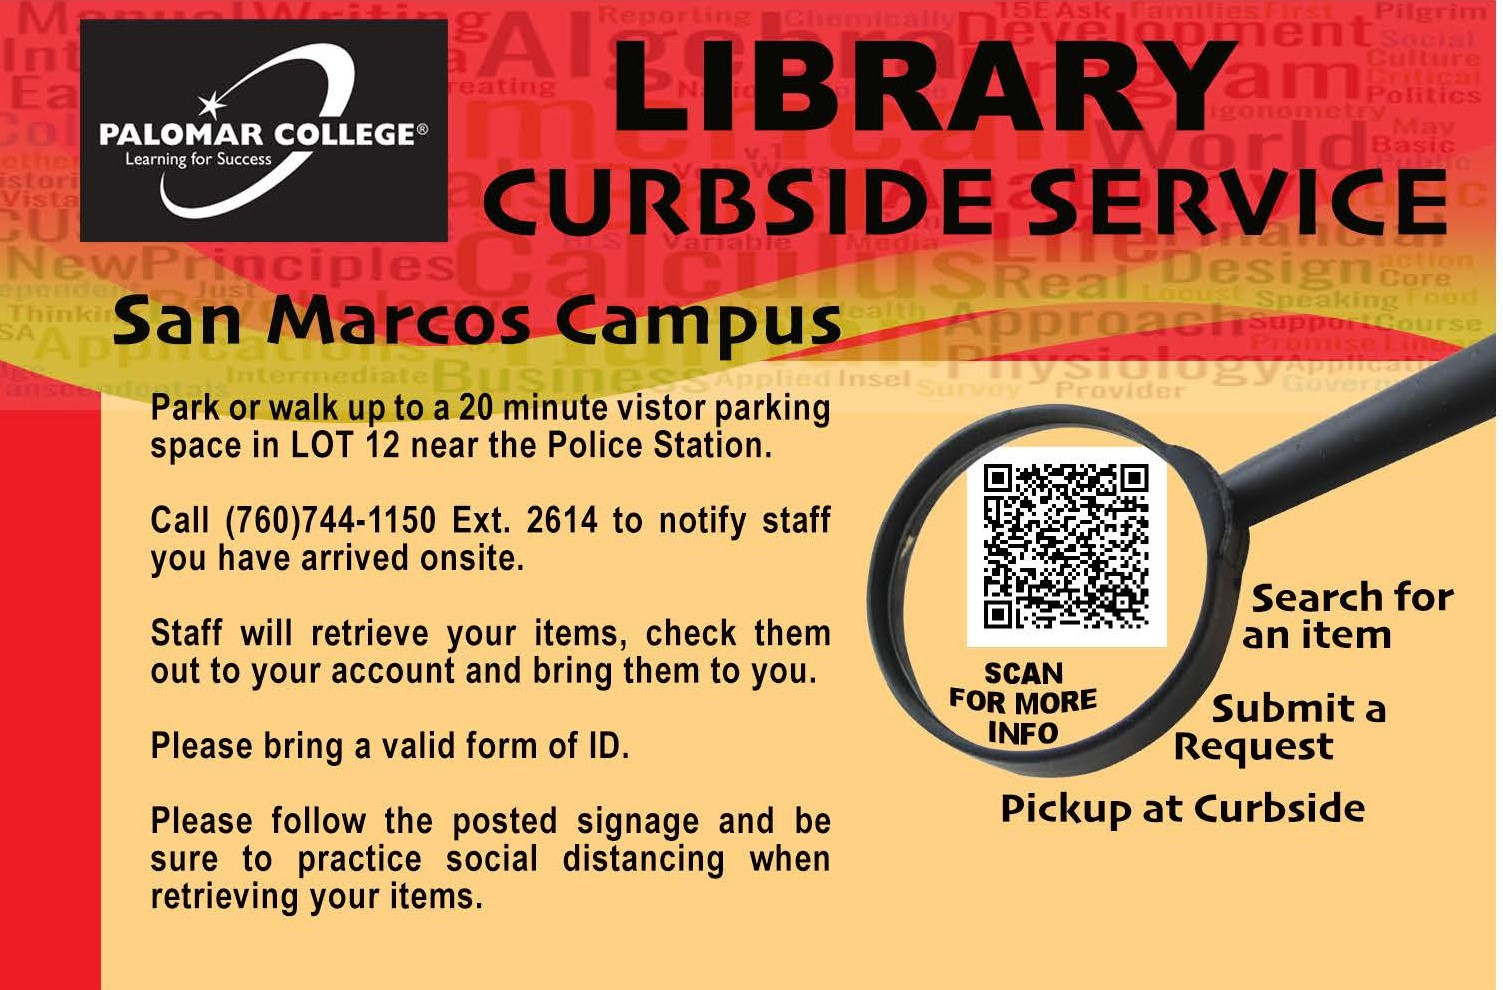 San Marcos Library Curbside Services